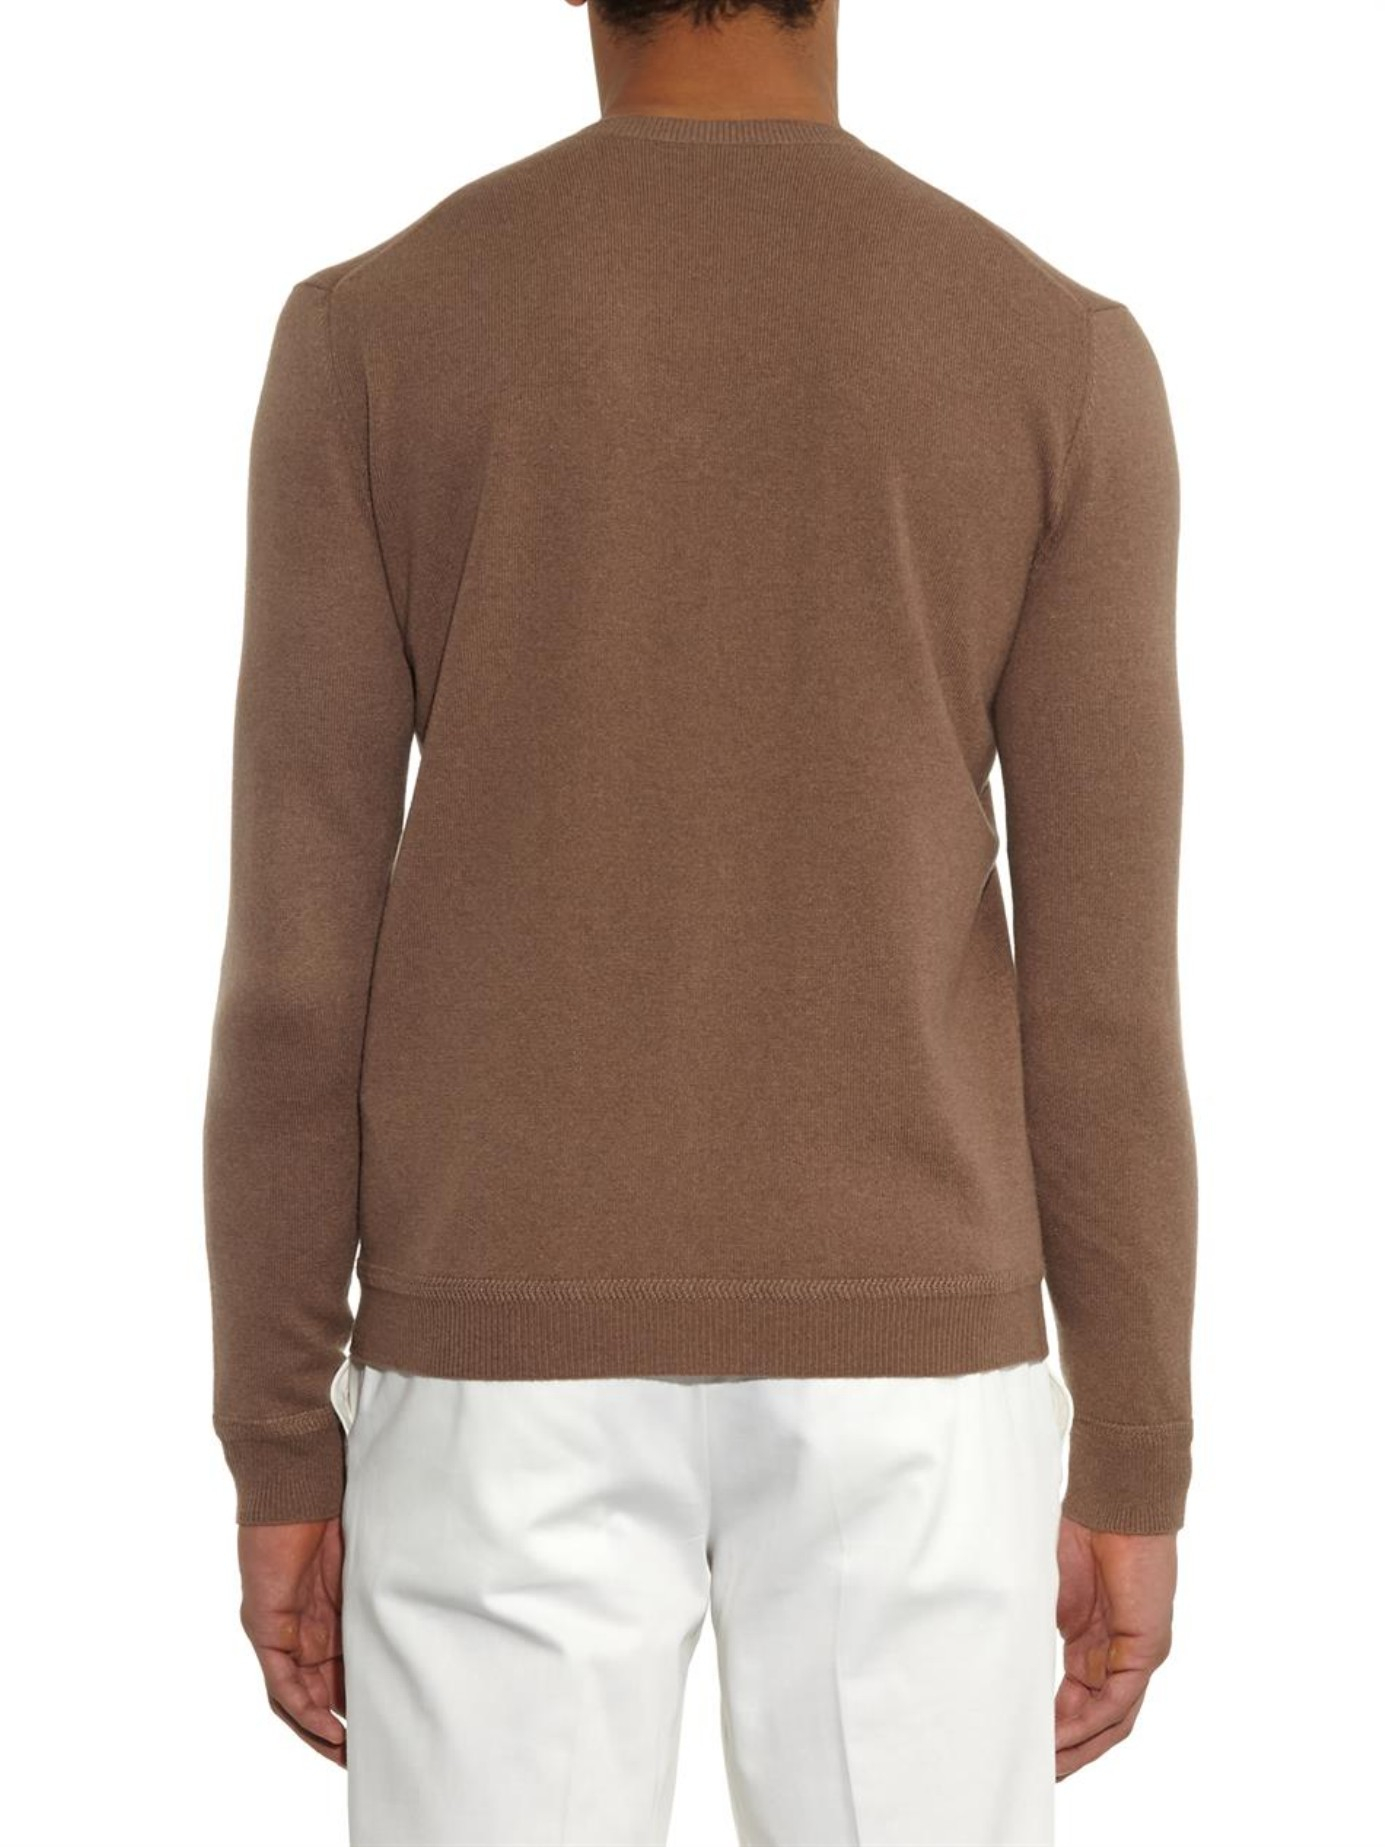 8a62bca5b616be Gucci V-neck Cashmere Sweater in Brown for Men - Lyst